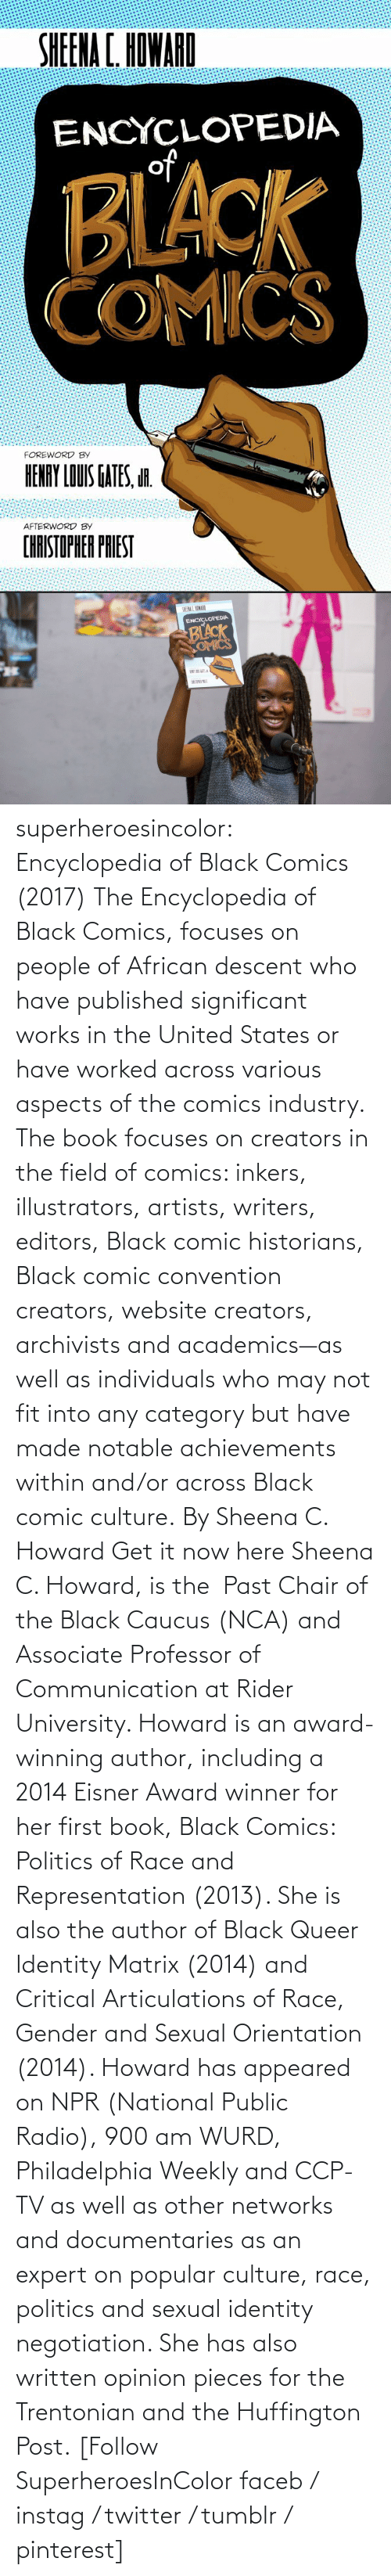 Twitter: superheroesincolor: Encyclopedia of Black Comics (2017) The Encyclopedia of Black Comics, focuses on people of African descent who have published significant works in the United States or have worked across various aspects of the comics industry.  The book focuses on creators in the field of comics: inkers, illustrators, artists, writers, editors, Black comic historians, Black comic convention creators, website creators, archivists and academics—as well as individuals who may not fit into any category but have made notable achievements within and/or across Black comic culture. By Sheena C. Howard Get it now here  Sheena C. Howard, is the  Past Chair of the Black Caucus (NCA) and Associate Professor of Communication at Rider University. Howard is an award-winning author, including a 2014 Eisner Award winner for her first book, Black Comics: Politics of Race and Representation (2013). She is also the author of Black Queer Identity Matrix (2014) and Critical Articulations of Race, Gender and Sexual Orientation (2014). Howard has appeared on NPR (National Public Radio), 900 am WURD, Philadelphia Weekly and CCP-TV as well as other networks and documentaries as an expert on popular culture, race, politics and sexual identity negotiation. She has also written opinion pieces for the Trentonian and the Huffington Post.   [Follow SuperheroesInColor faceb / instag / twitter / tumblr / pinterest]